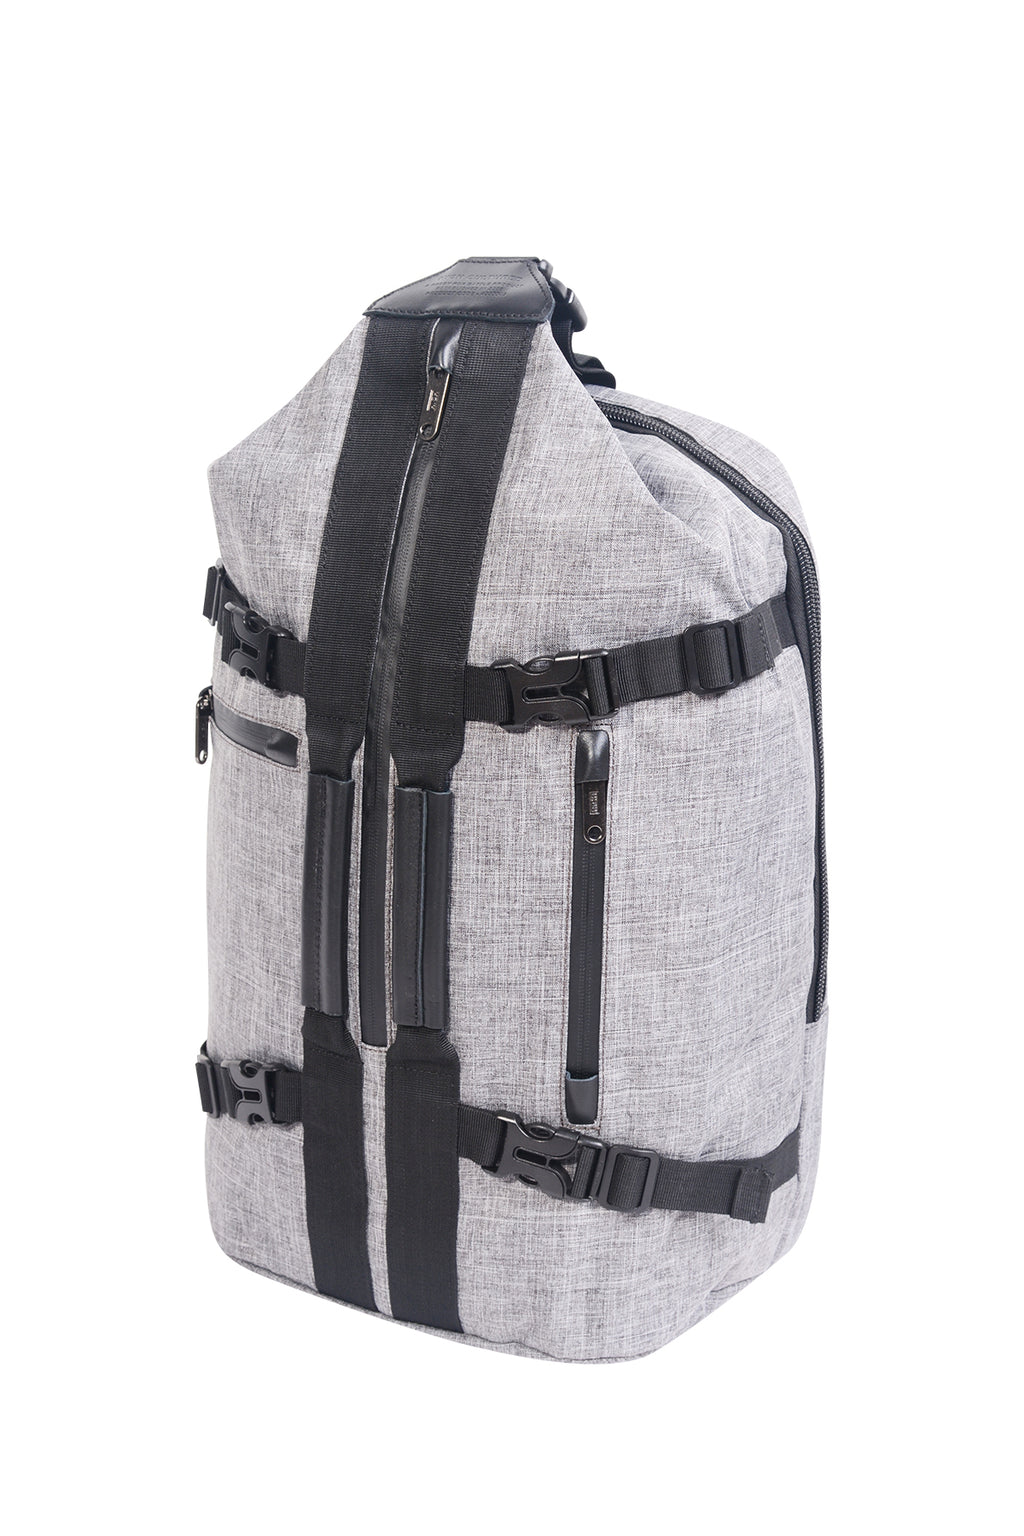 2-IN-1 TRAVEL BACKPACK | GREY - 192